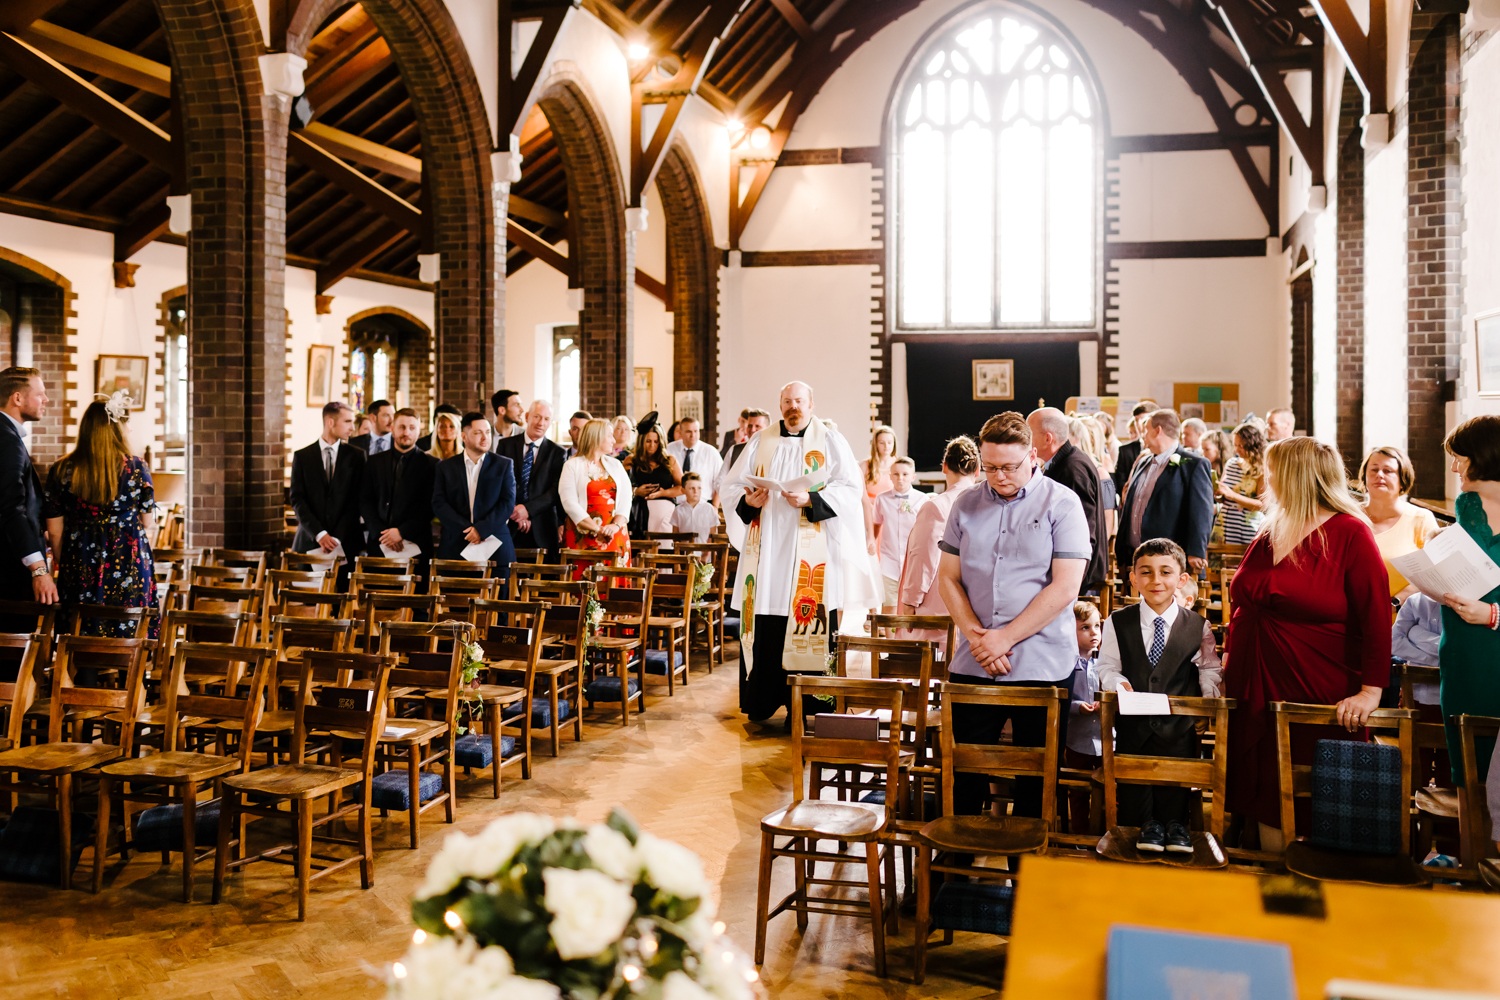 north-wales-wedding-photographer-174.jpg